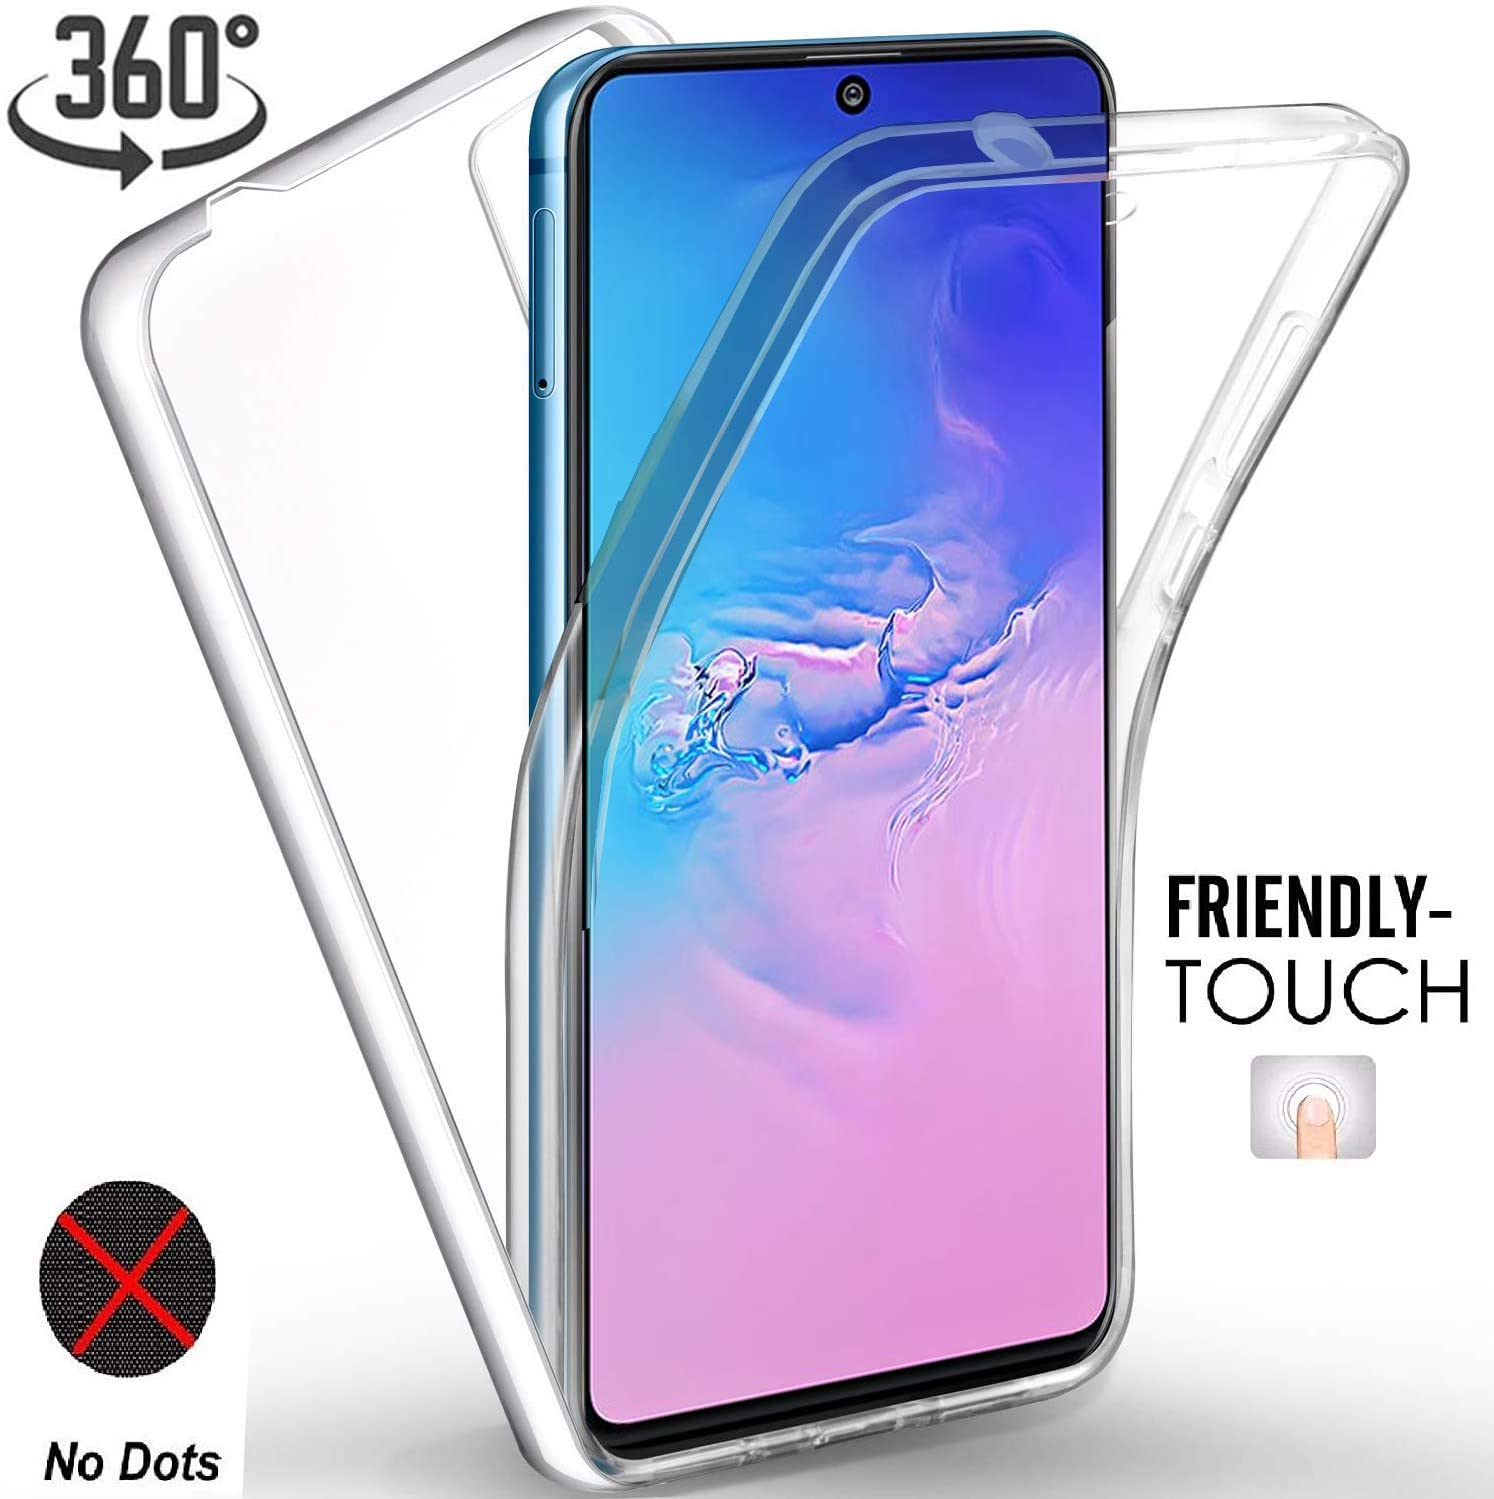 360 Full Body Case For Samsung Galaxy A51 A31 M21 A01 A20S A30S A50 S20 Ultra Note 10 Lite S10 Plus S9 Silicone TPU Double Clear